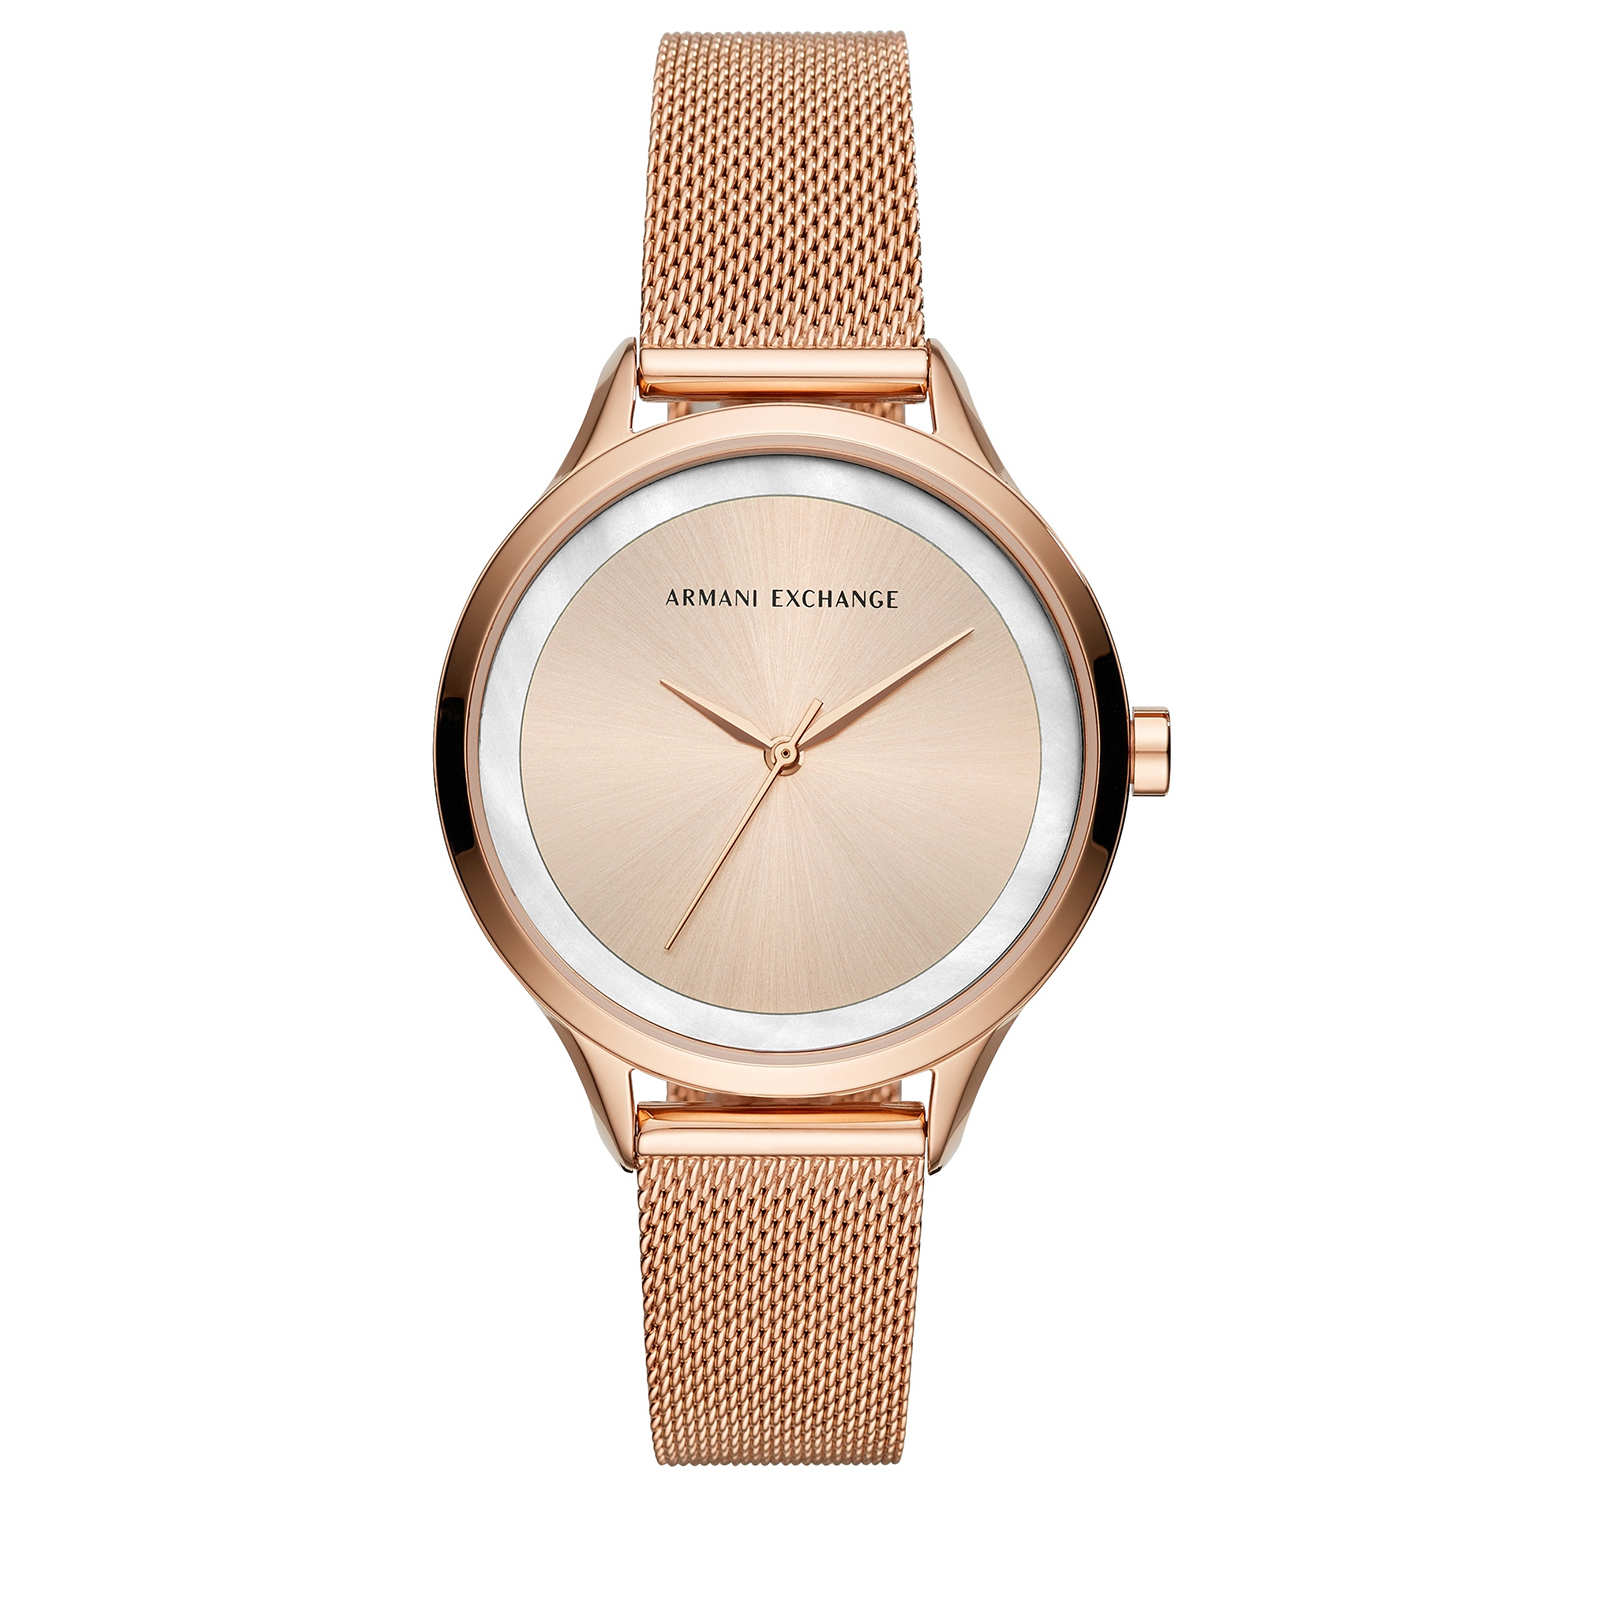 Armani Exchange Ladies Watch AX5602